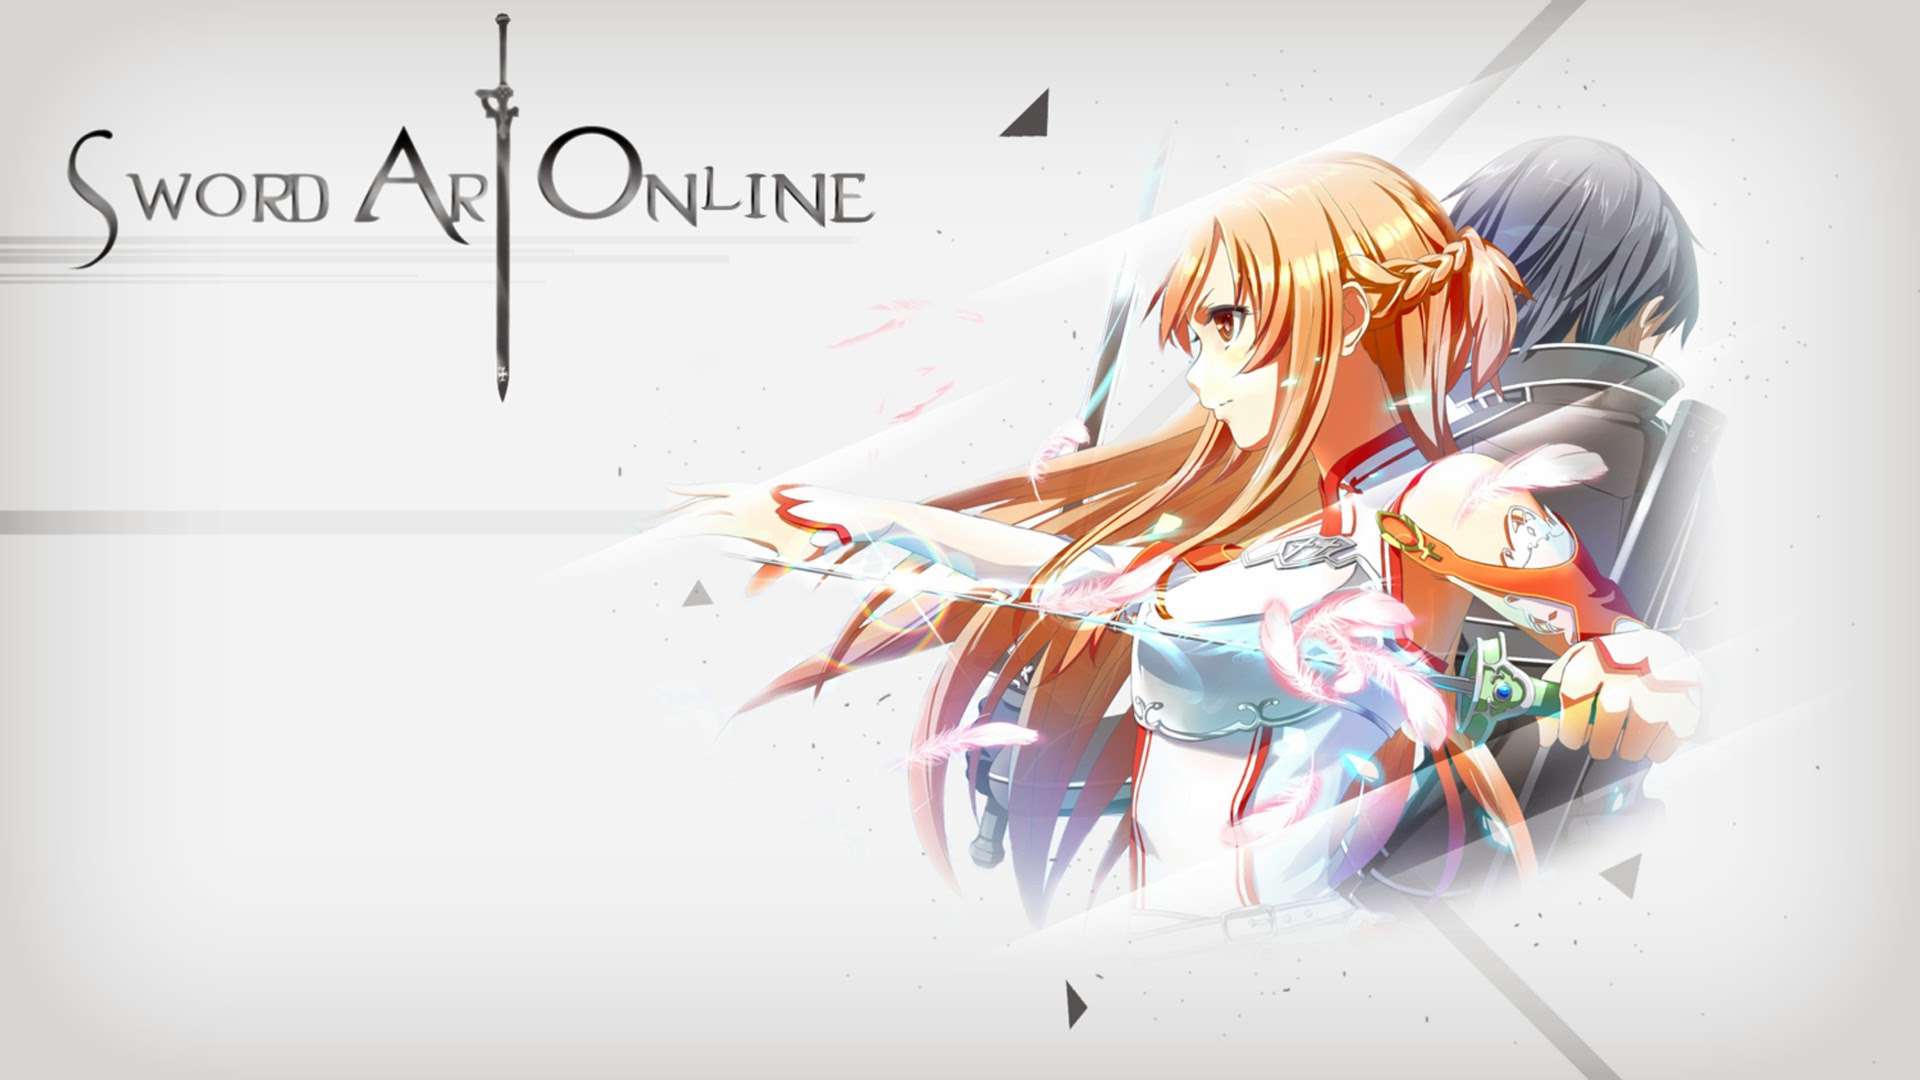 Asuna Sword Cute Armor Sword Art Online Green Field Anime HD Wallpaper ...